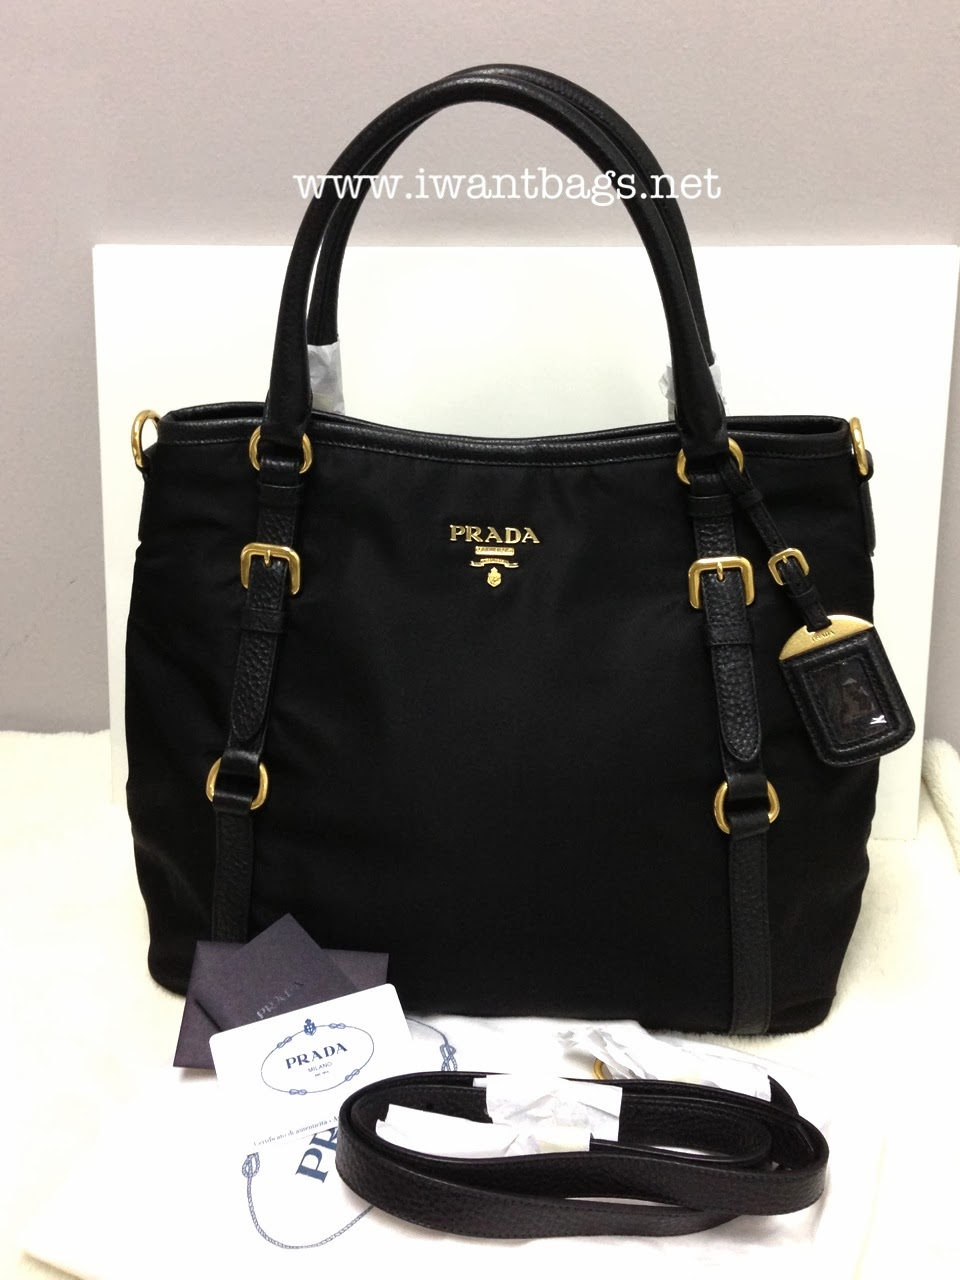 905cf919820e Prada Tessuto Nylon Tote Reviews | Stanford Center for Opportunity ...